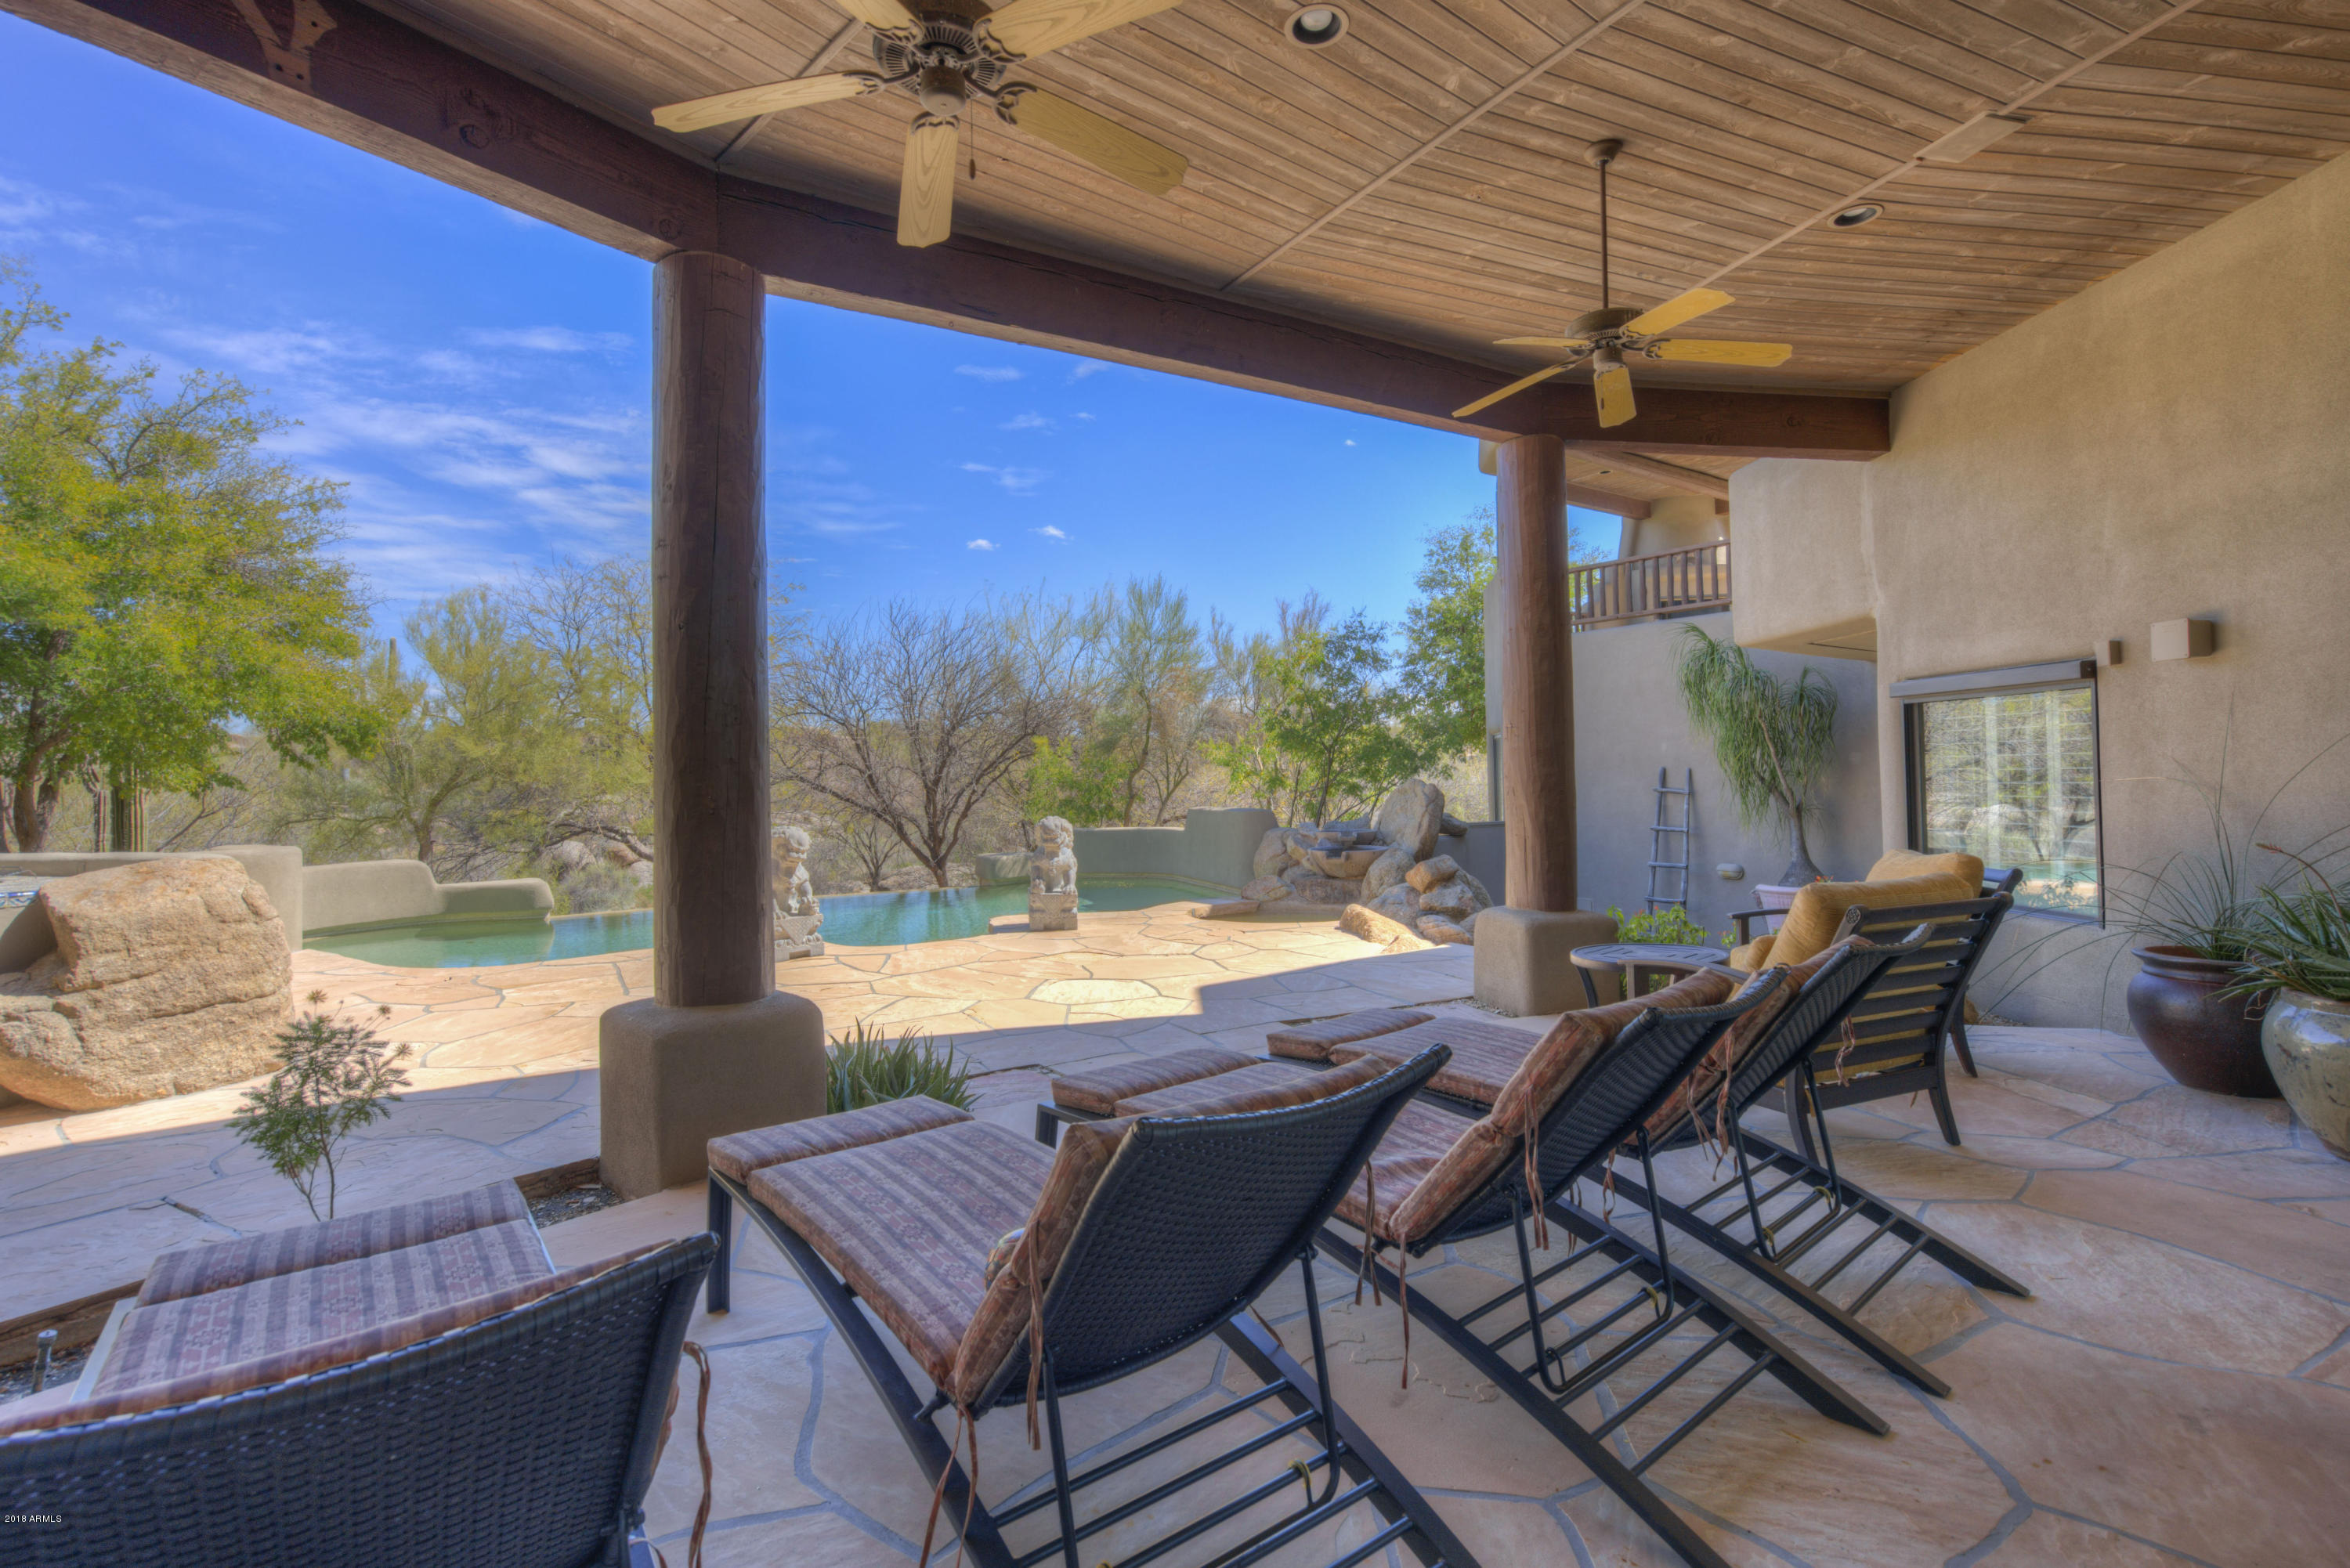 MLS 5732470 7330 E ARROYO SECO Road, Scottsdale, AZ 85266 Scottsdale AZ Private Pool